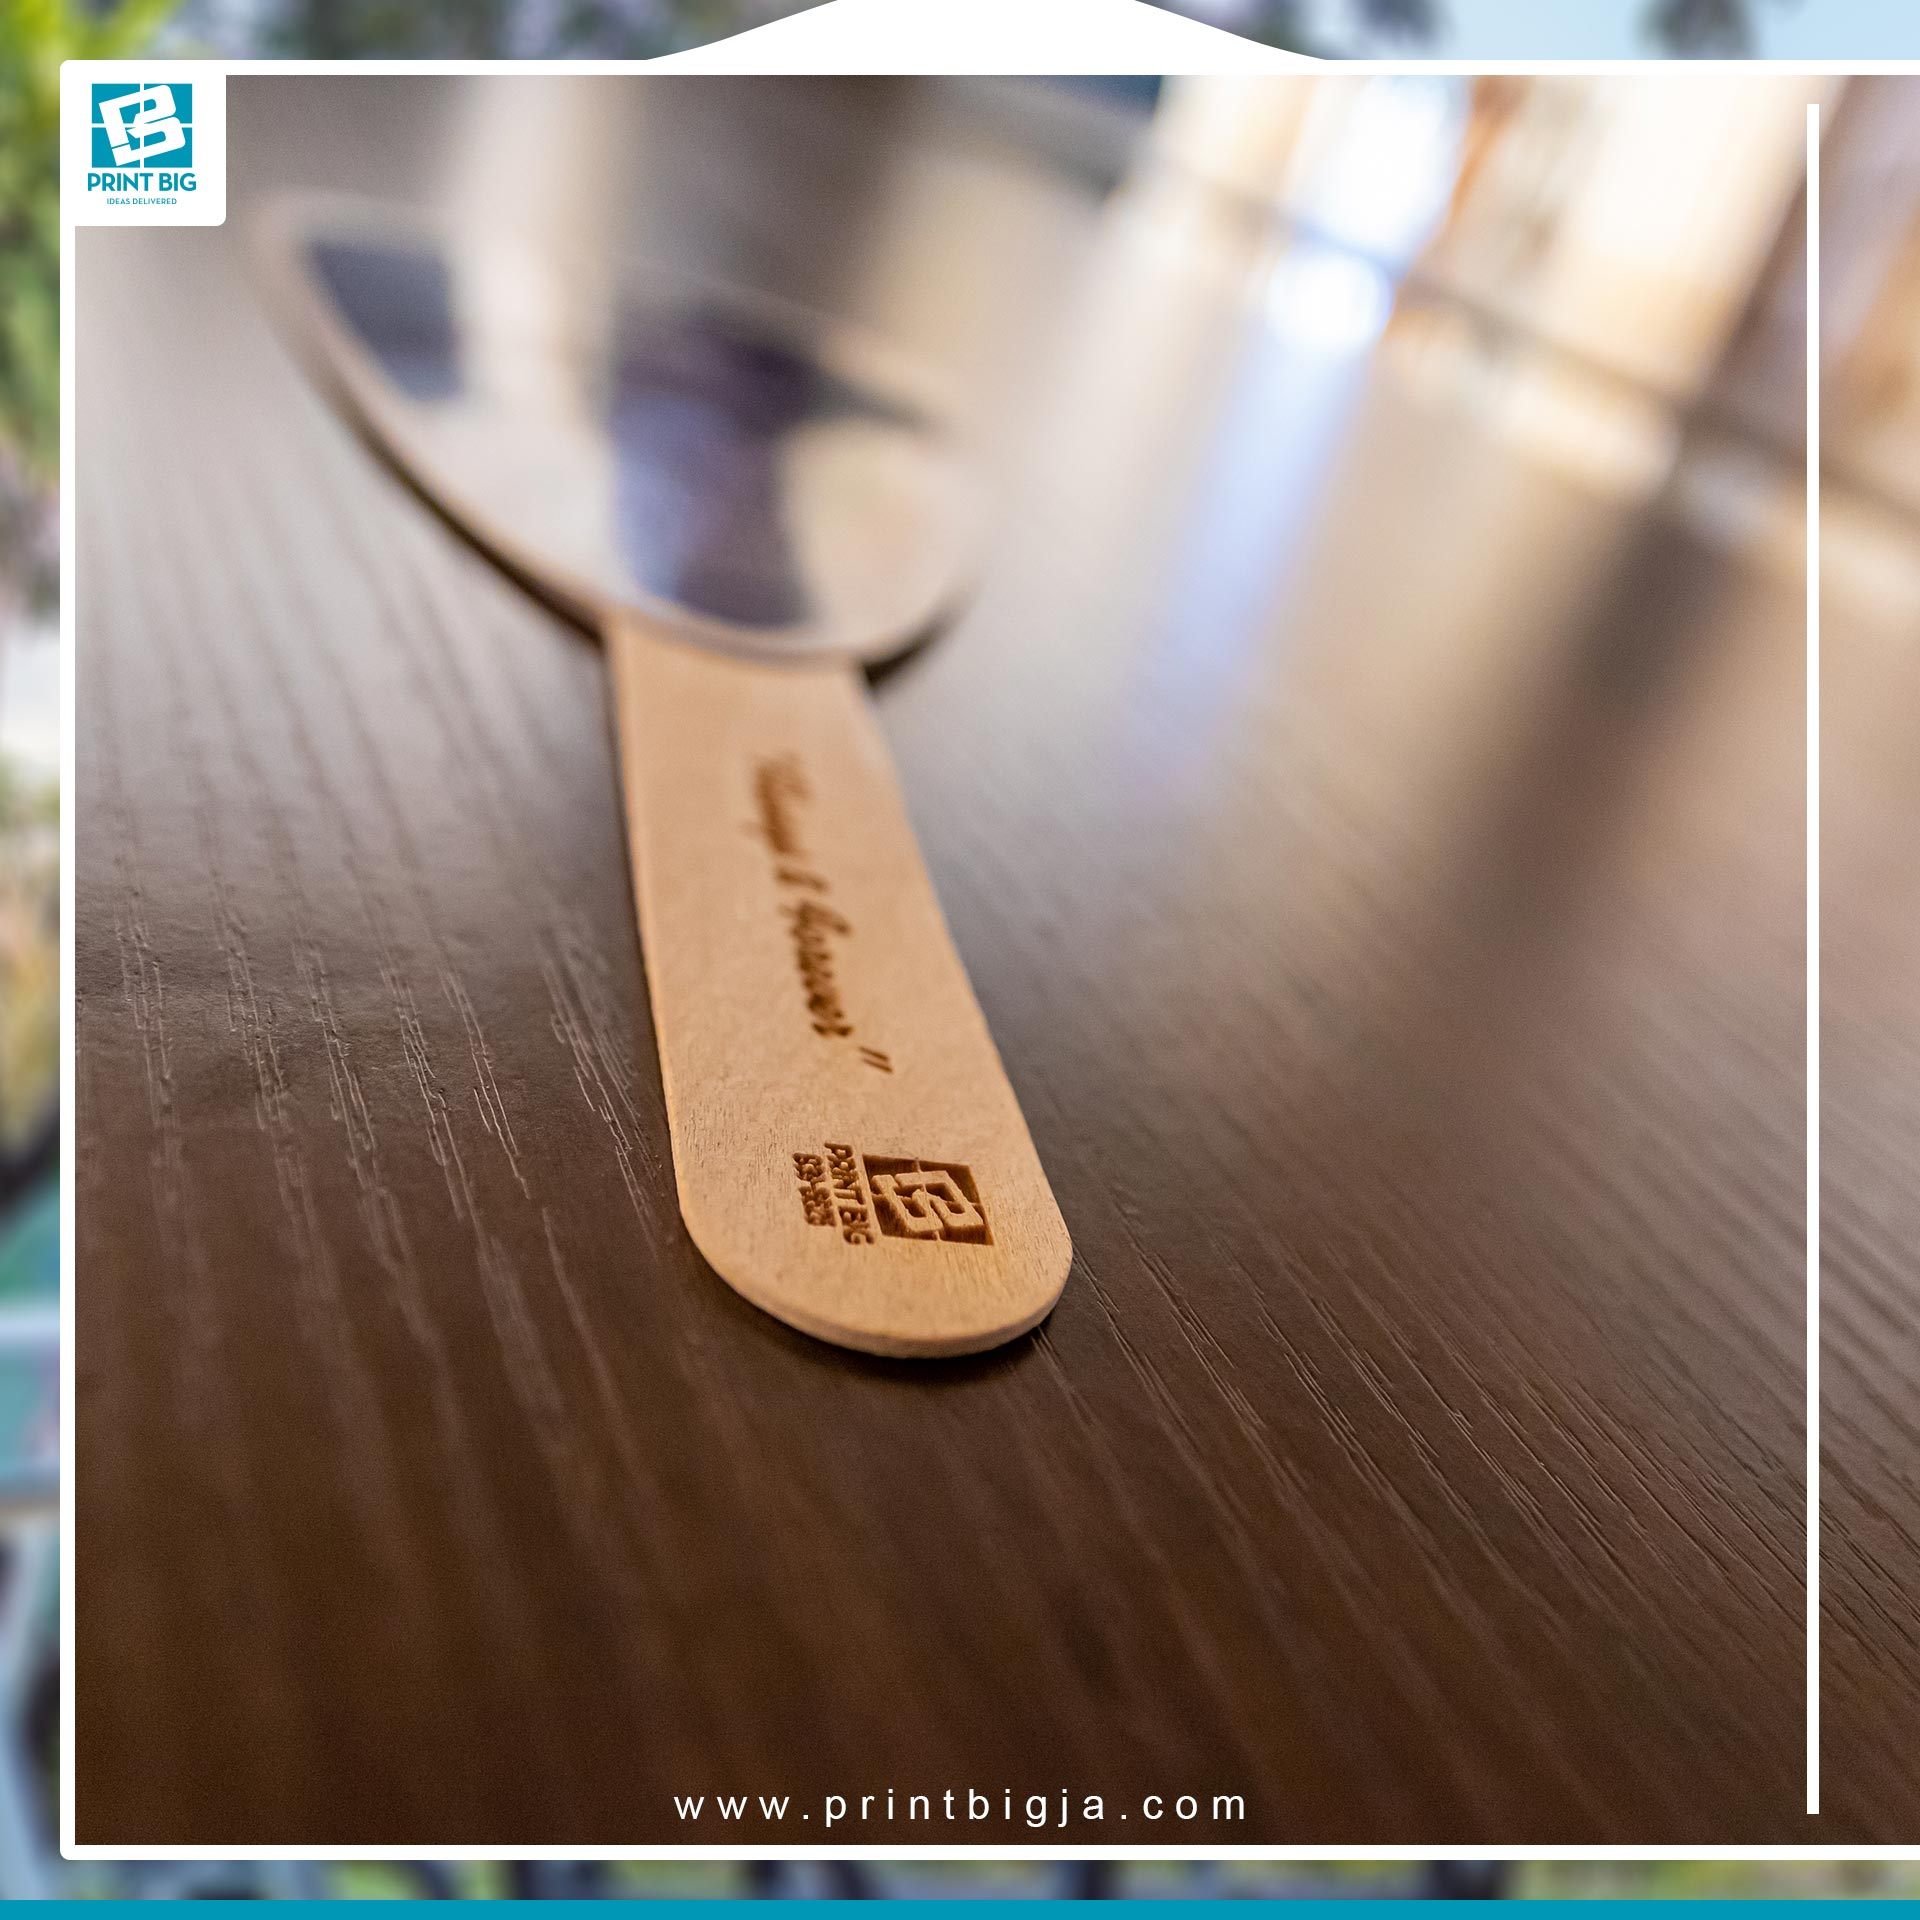 A professional personalised Engraving service is